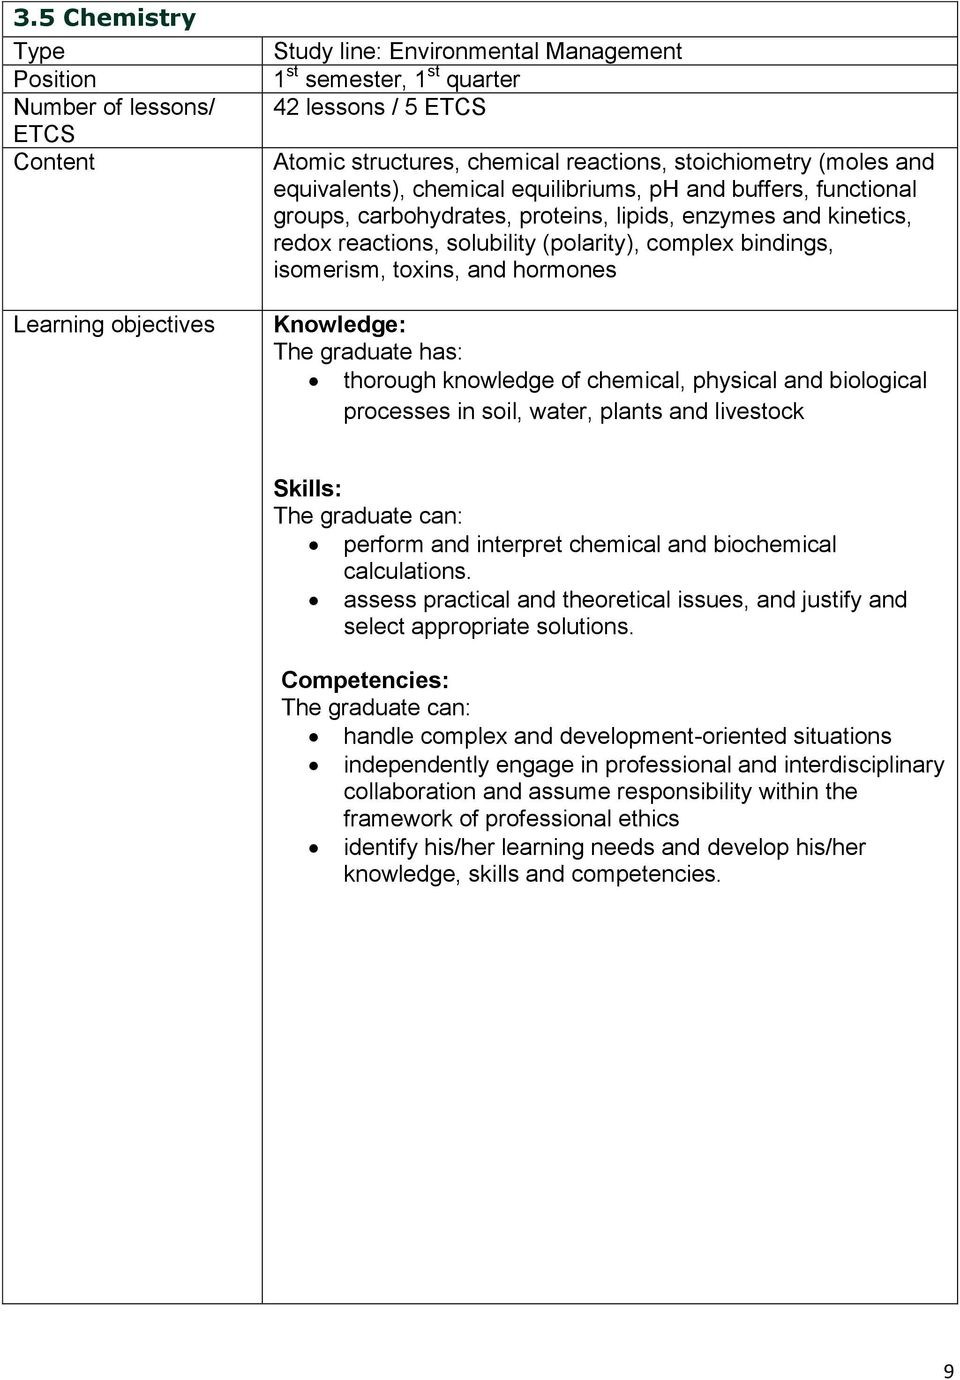 bindings, isomerism, toxins, and hormones Knowledge: The graduate has: thorough knowledge of chemical, physical and biological processes in soil, water, plants and livestock Skills: perform and